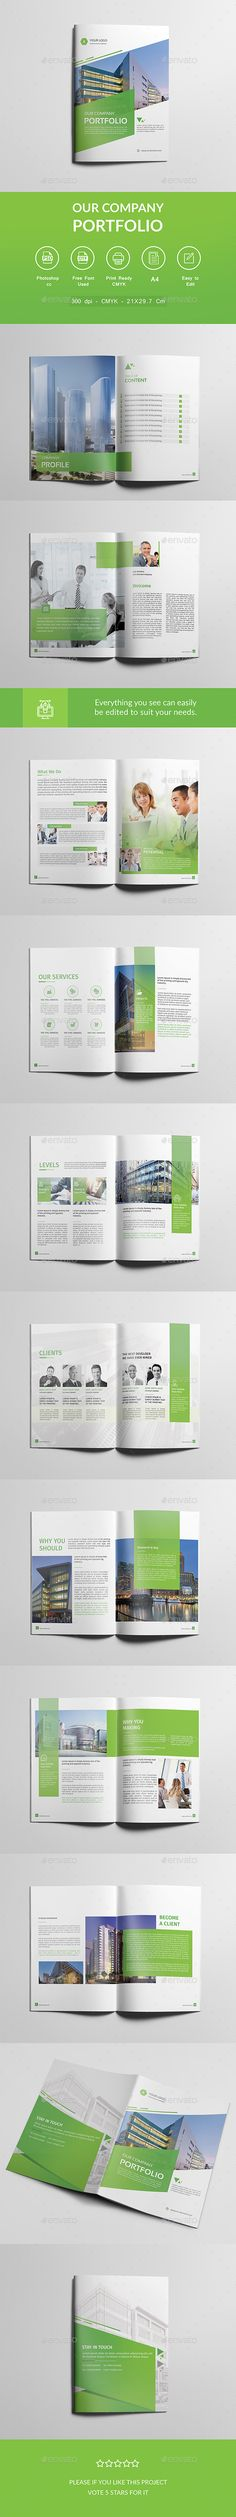 Multipurpose Square Brochure - DESIGN Pinterest - Ontwerp - it company profile template